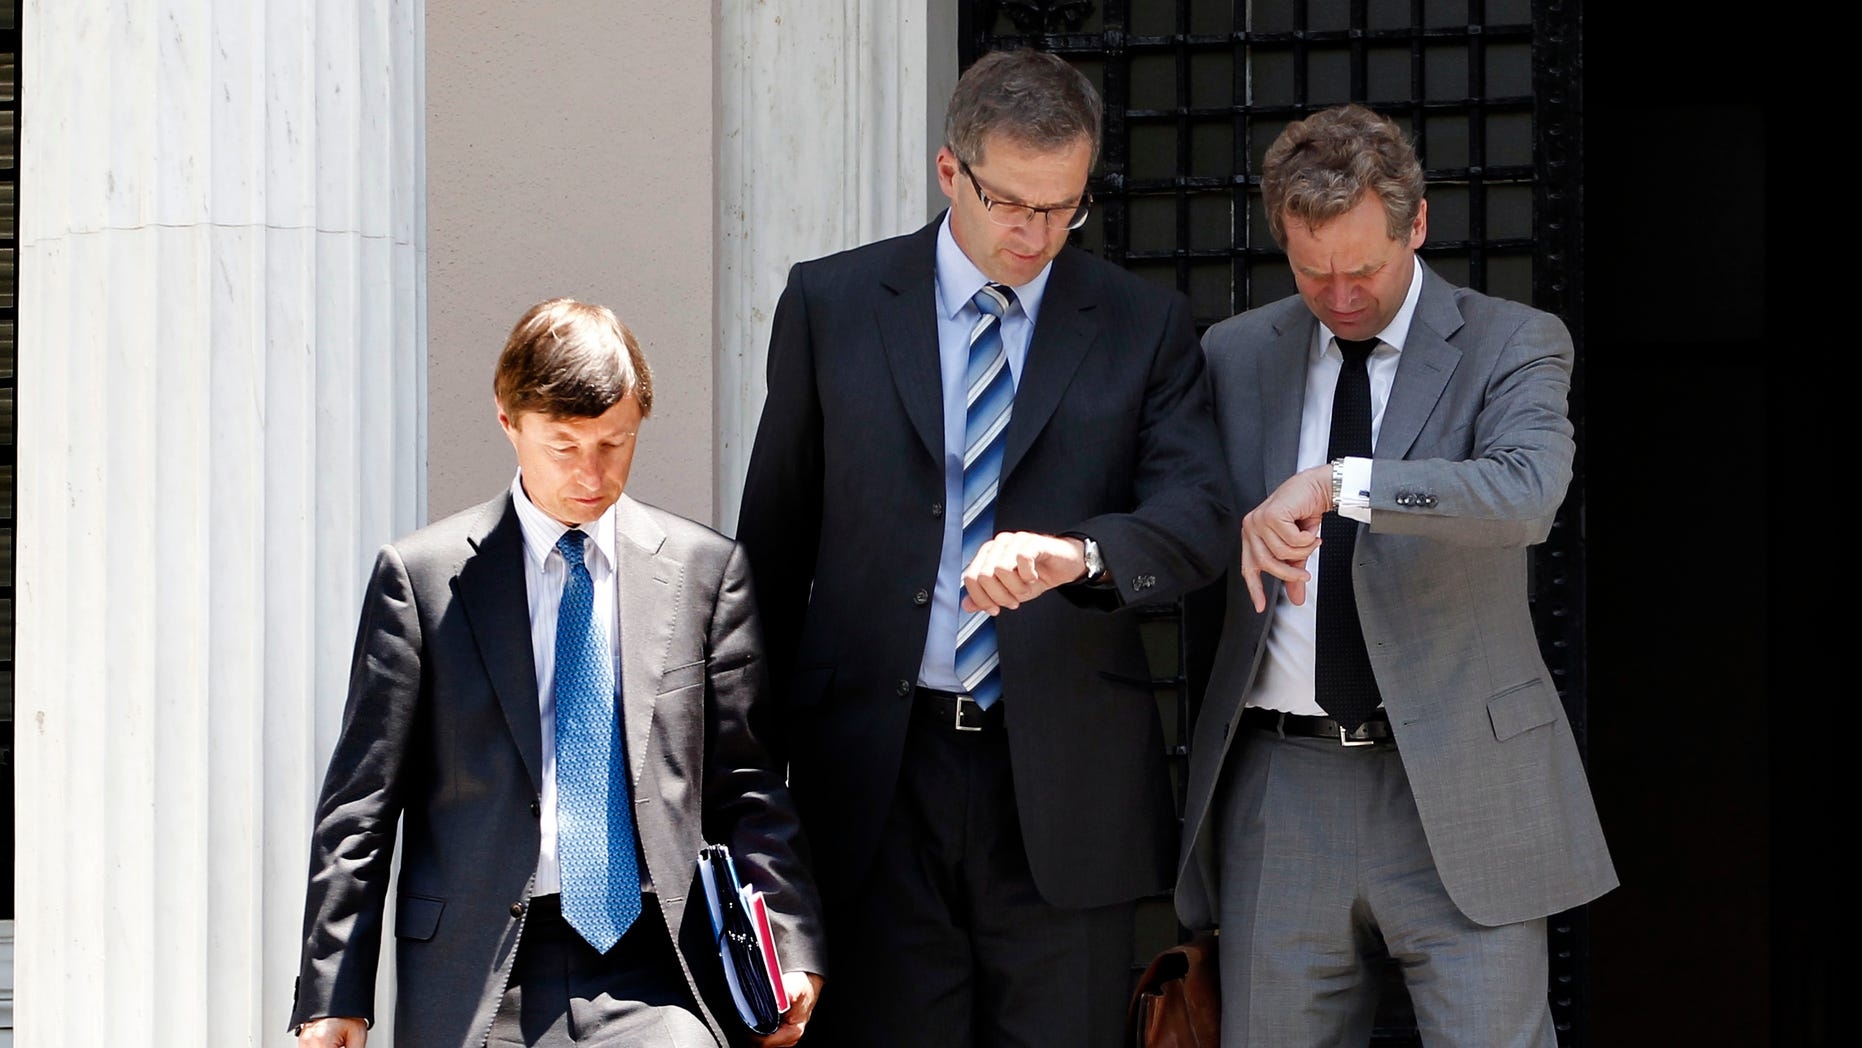 Poul Thomsen, the International Monetary Fund mission chief in Greece, right, and Klaus Masuch of the European Central Bank, center, check their watches next to European Commission official Matthias Mors as they leave Maximou mansion after a meeting with Greek Prime Minster Antonis Samaras, in Athens, Thursday, July 5, 2012. The debt inspectors from the European Central Bank, European Commission and International Monetary Fund, known as the troika, were meeting the new government, whose coalition partners want to persuade the country's rescue creditors to ease some of the strict terms of its bailout. (AP Photo/Petros Giannakouris)